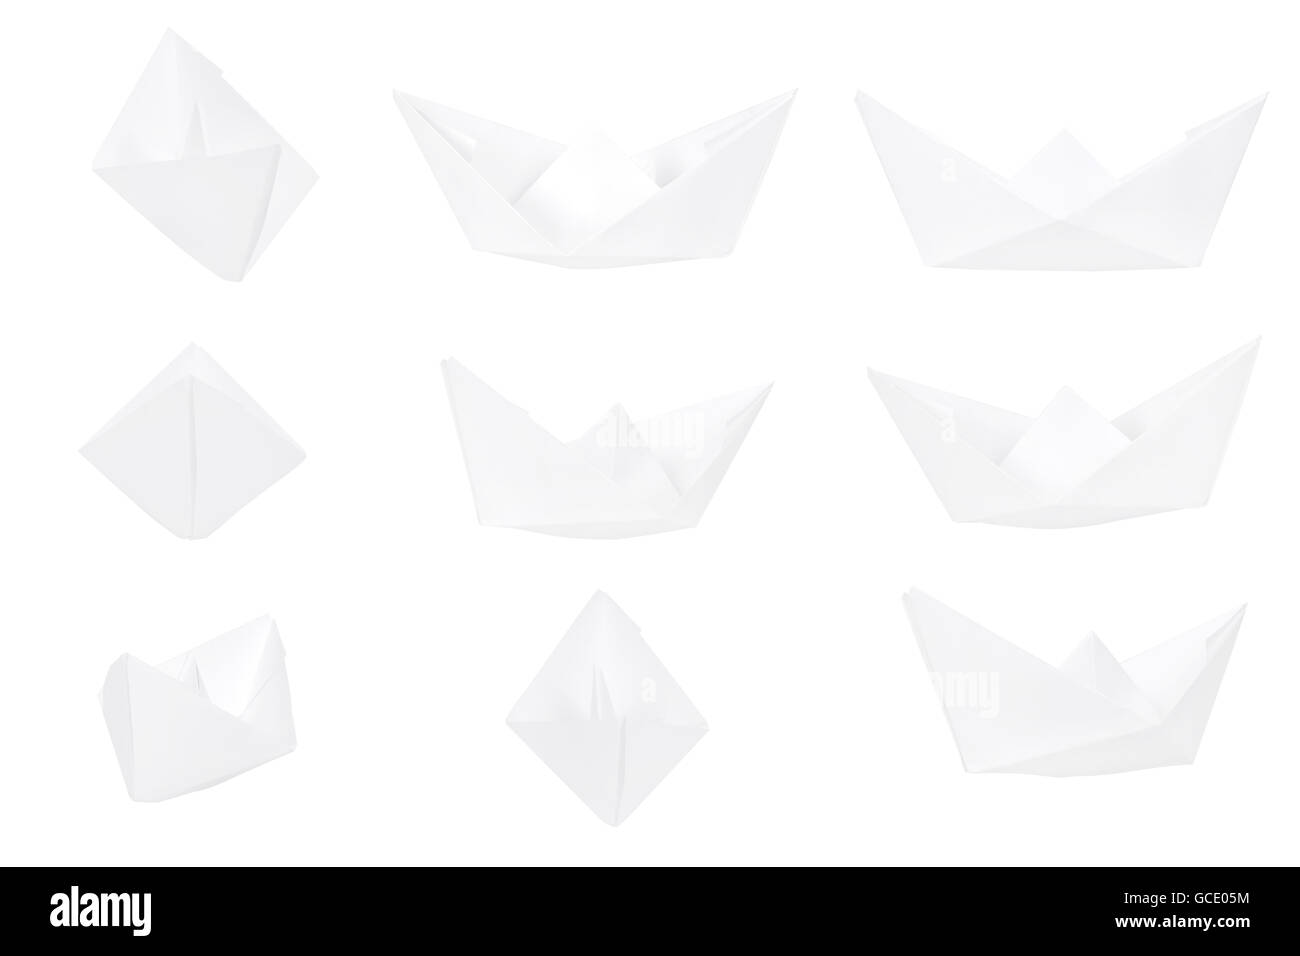 Different Views Of A Paper Boat Isolated On White Background Paper